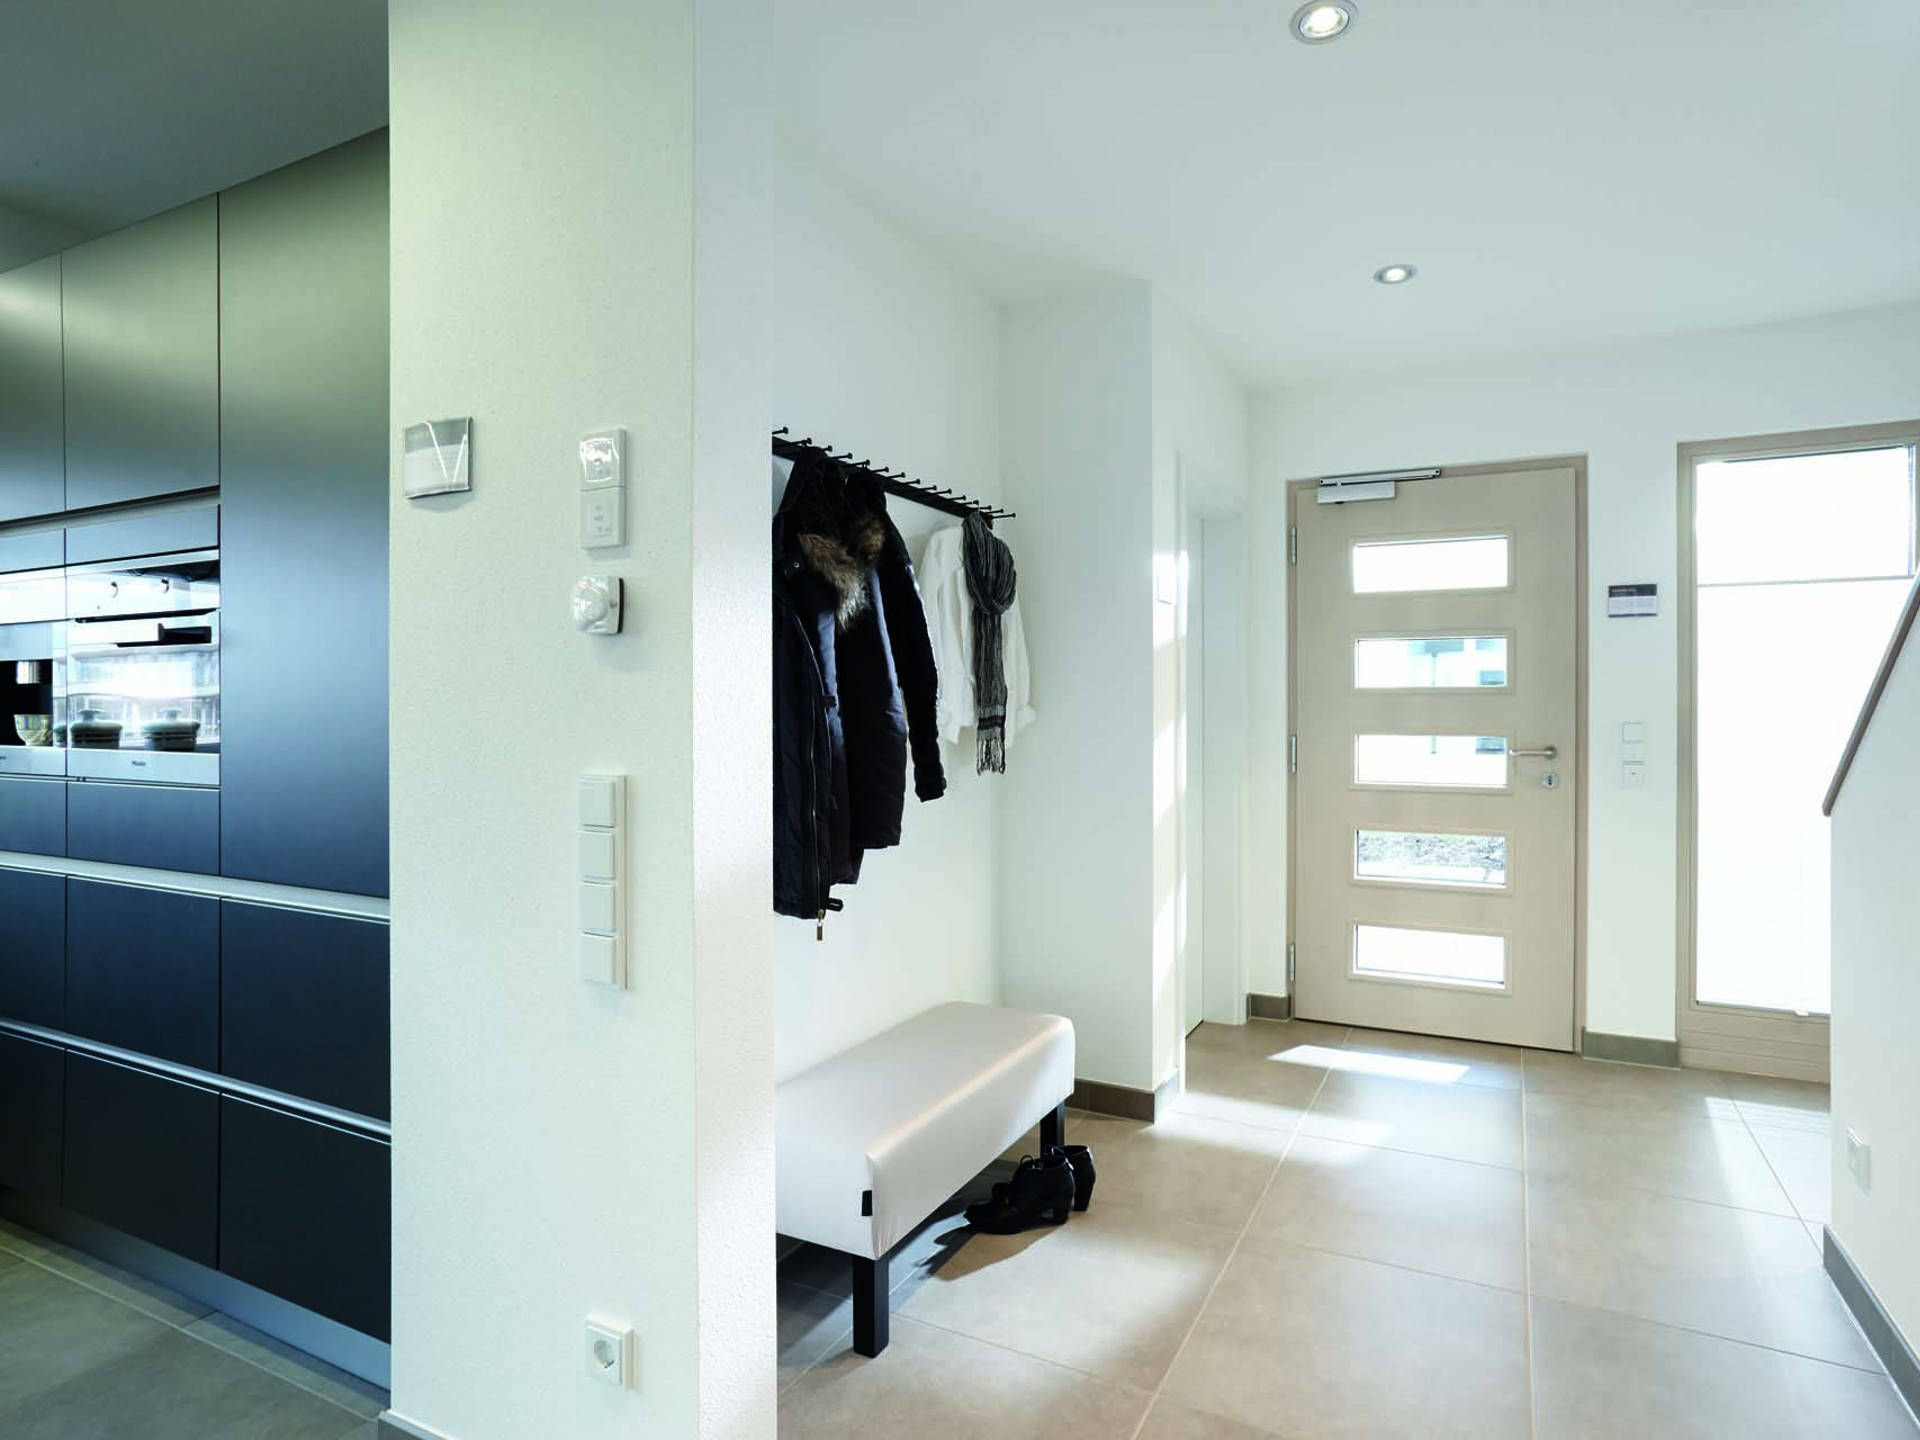 garderobe im haus neo 312 von fingerhaus mit musterhaus. Black Bedroom Furniture Sets. Home Design Ideas